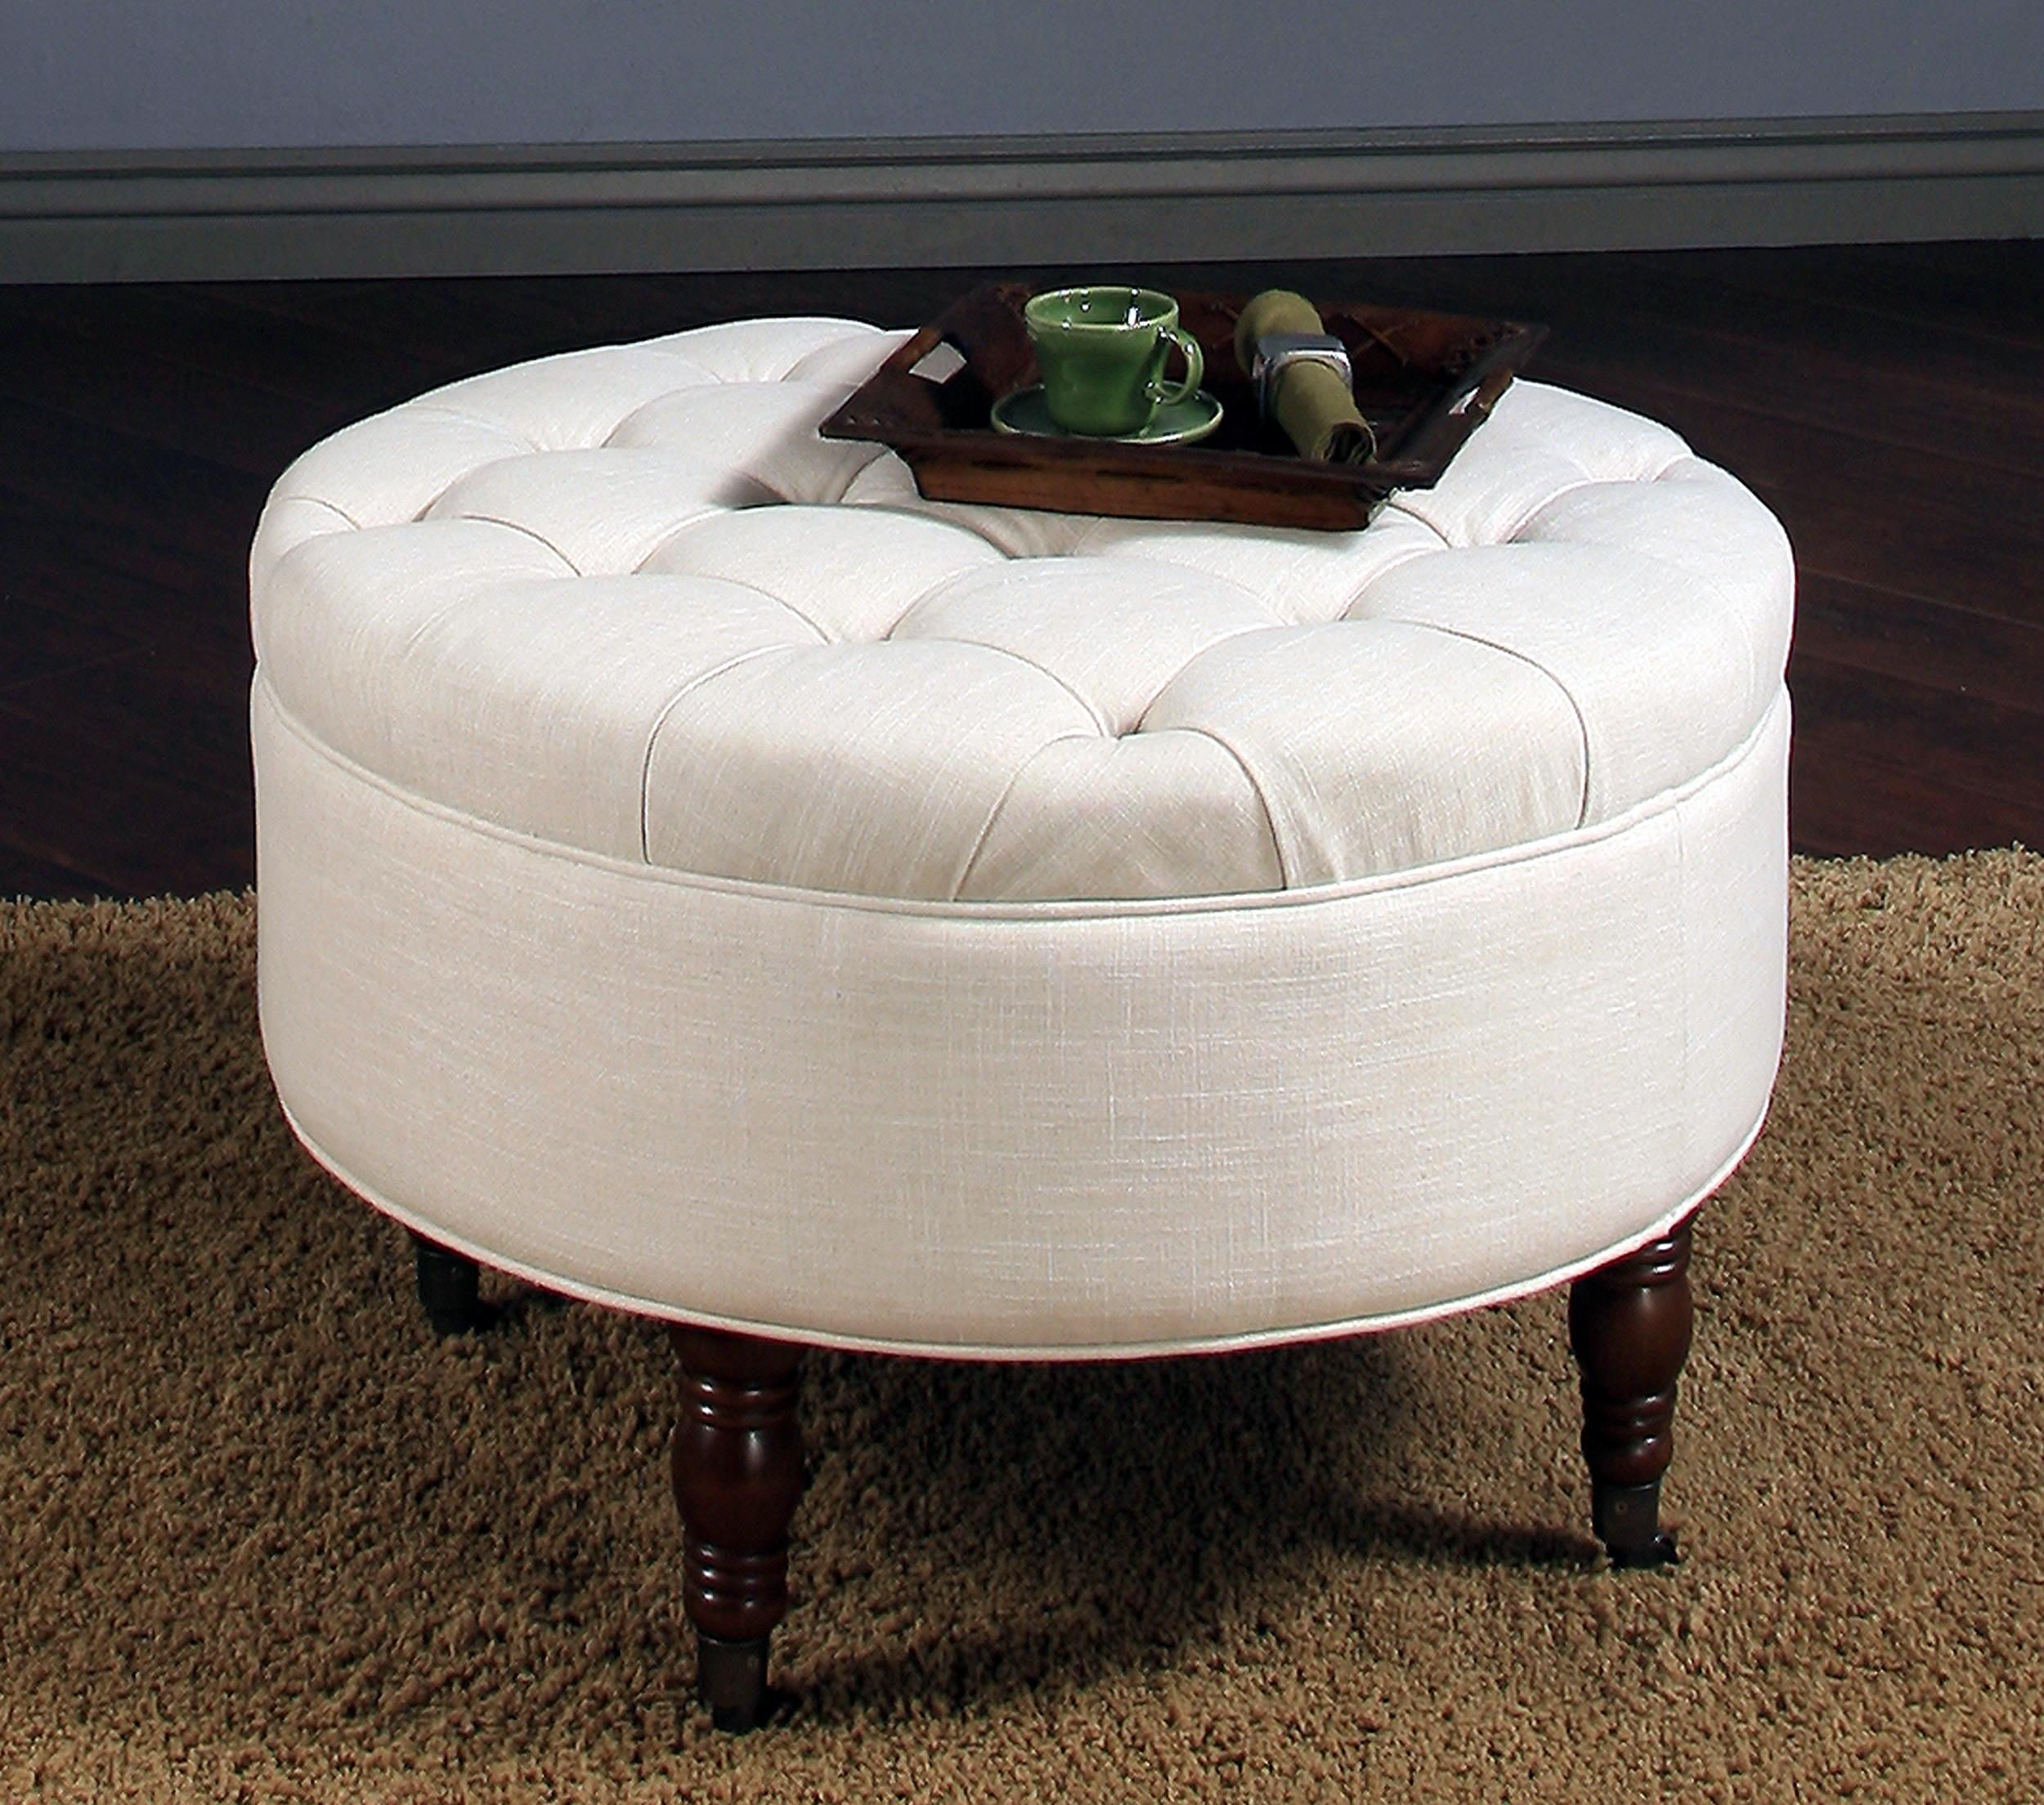 The Elegance Upholstered Ottoman Coffee Table Round Tufted Storage Ottoman Coffee Table Round Button Tufted Storage Ottoman (Image 10 of 10)